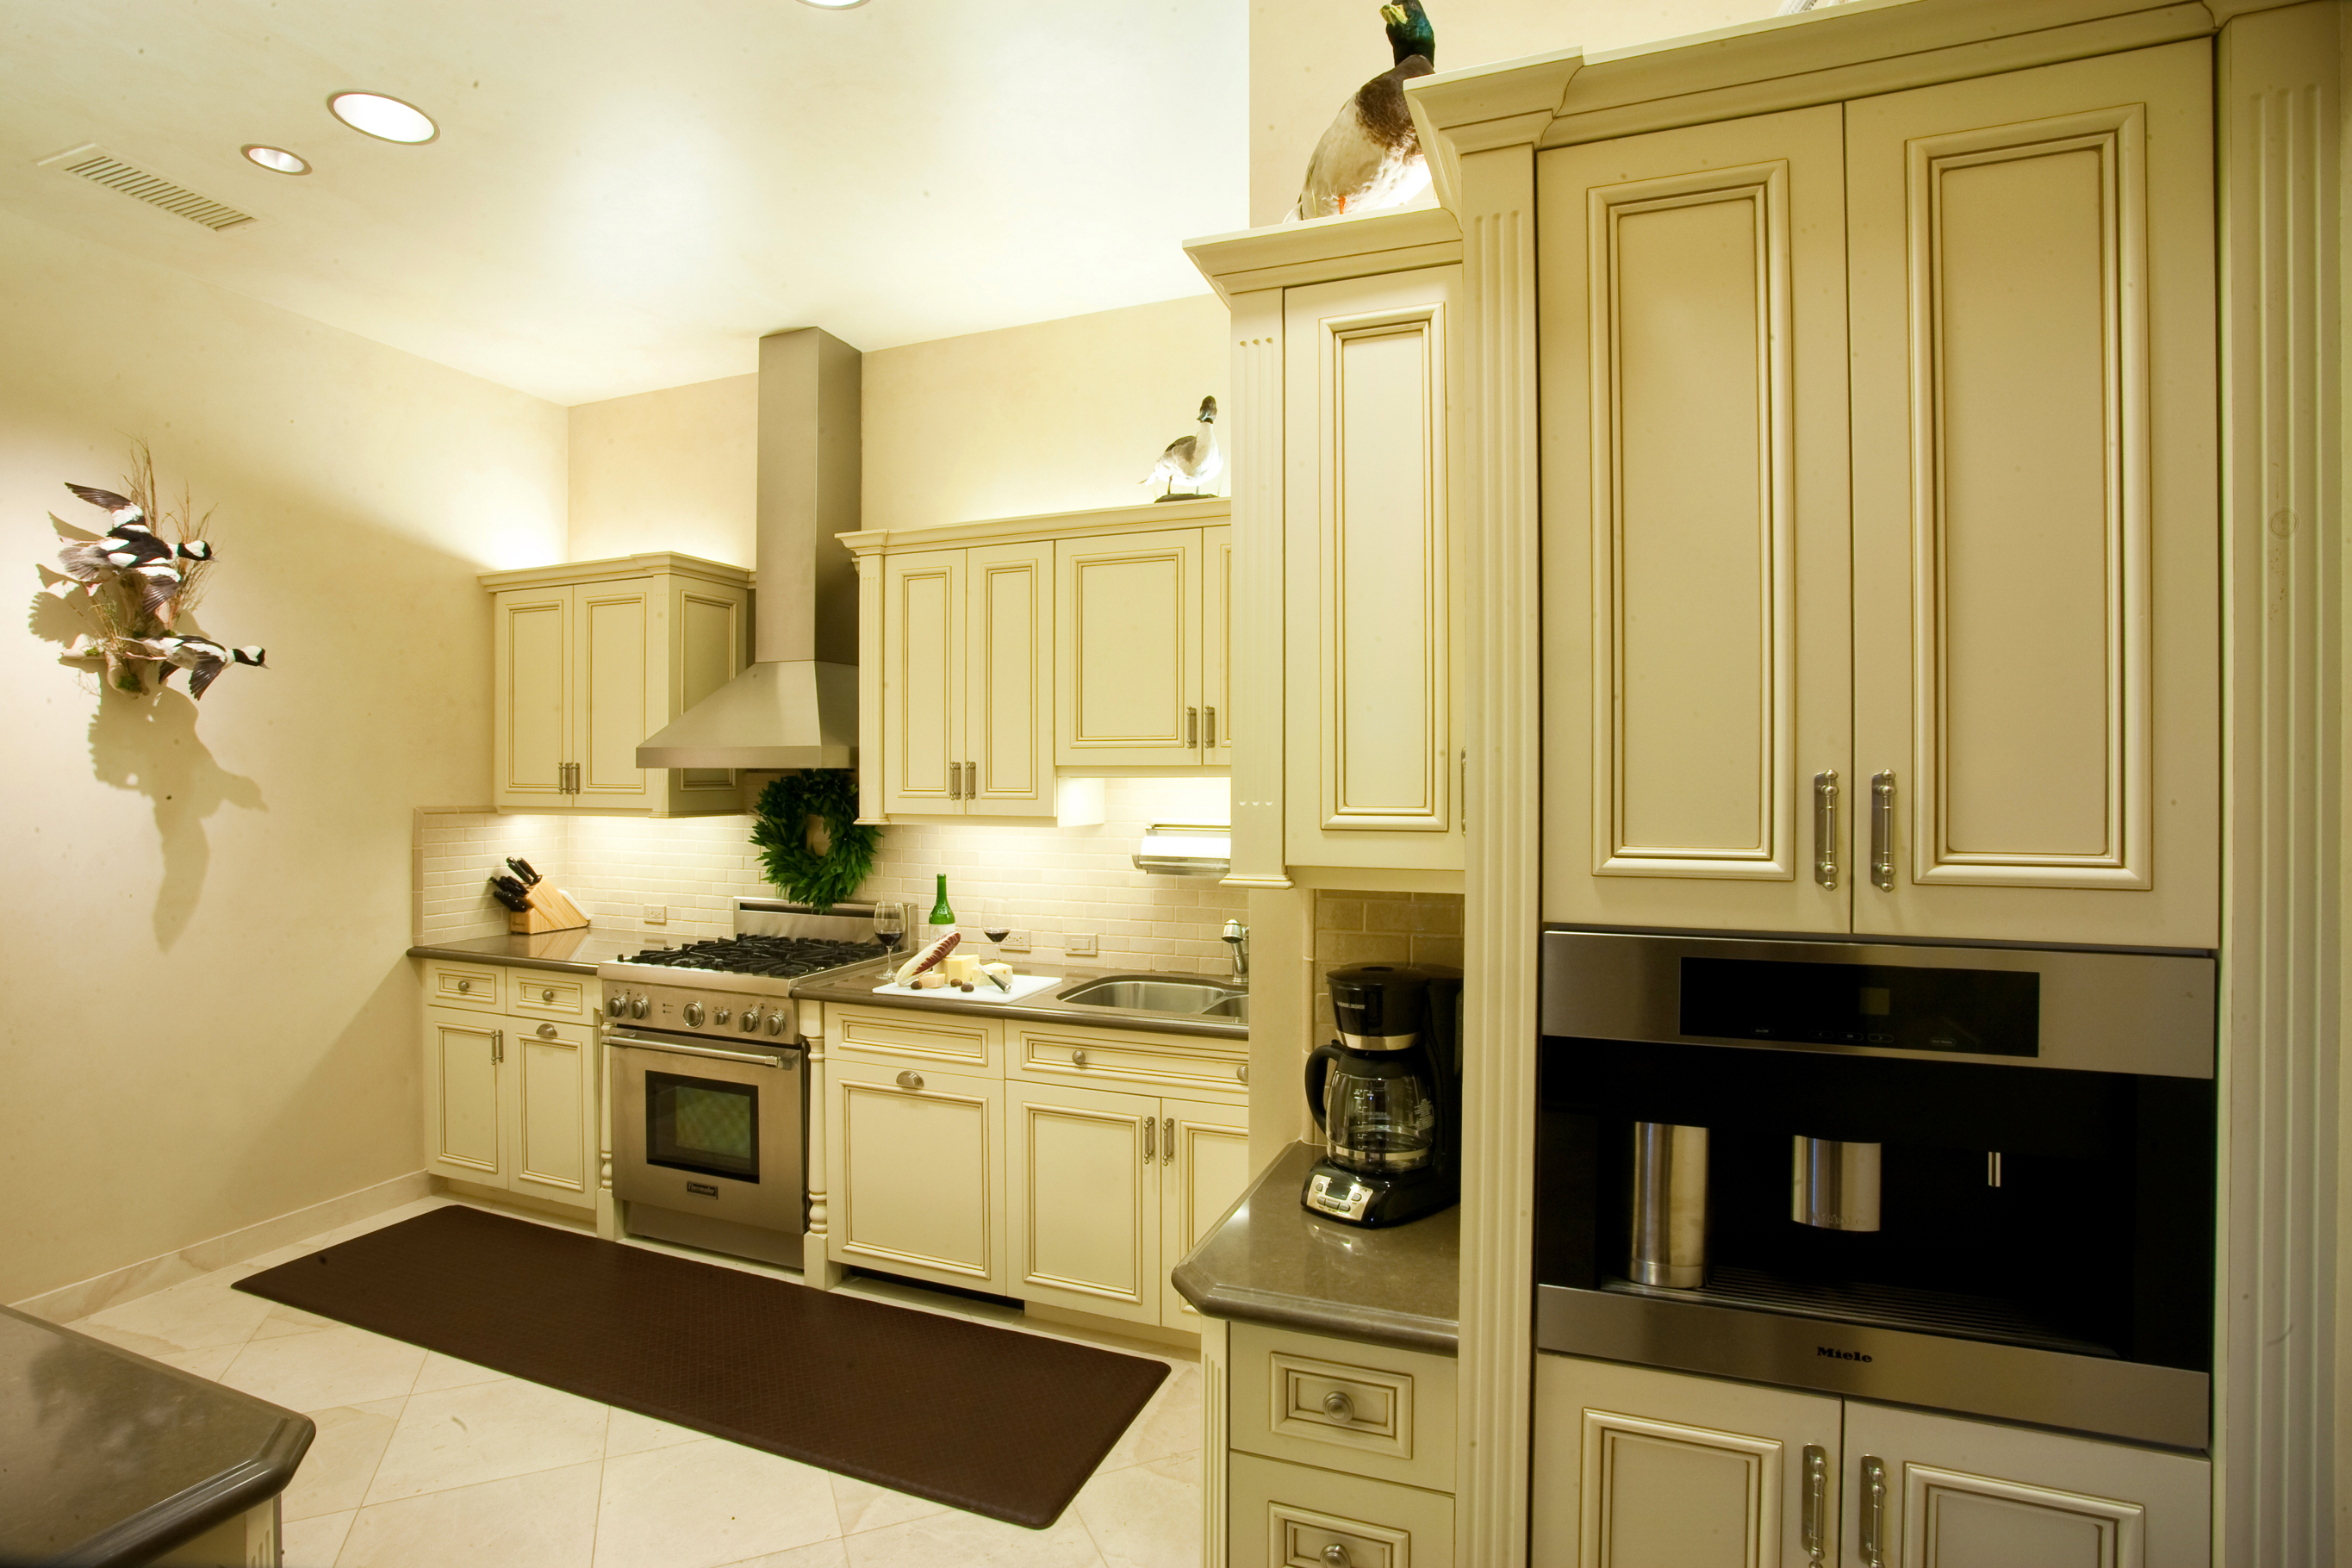 Kitchen With Cherry Cabinets Photo Gallery - Nelson's Cabinets